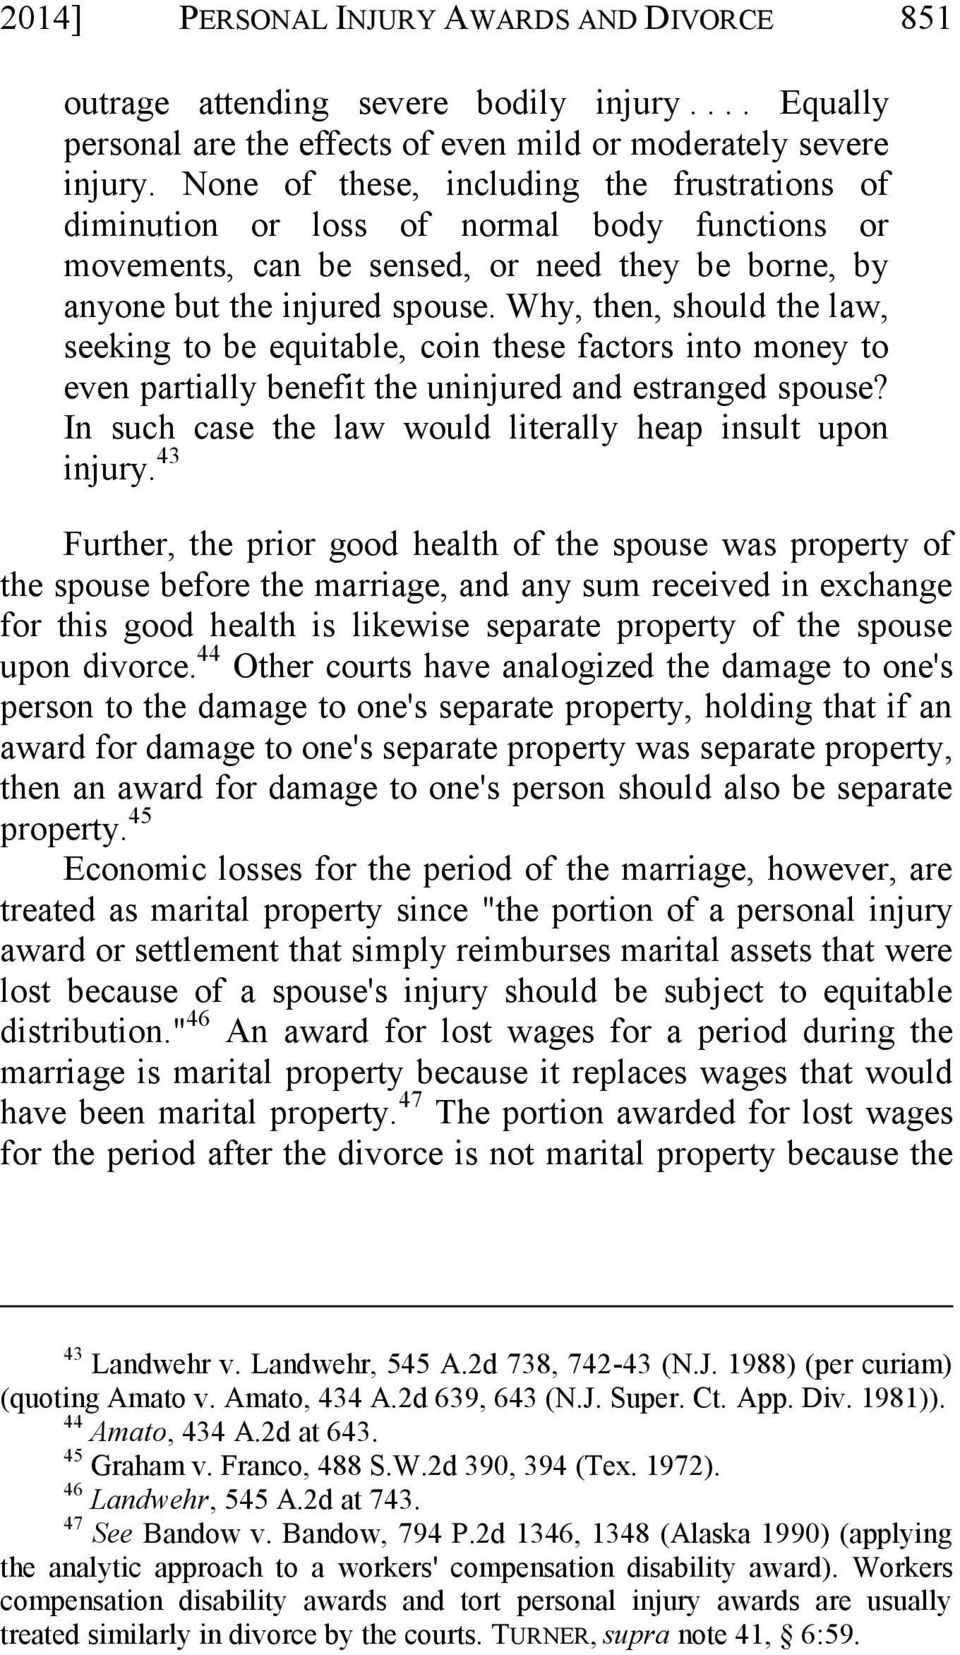 Why, then, should the law, seeking to be equitable, coin these factors into money to even partially benefit the uninjured and estranged spouse?